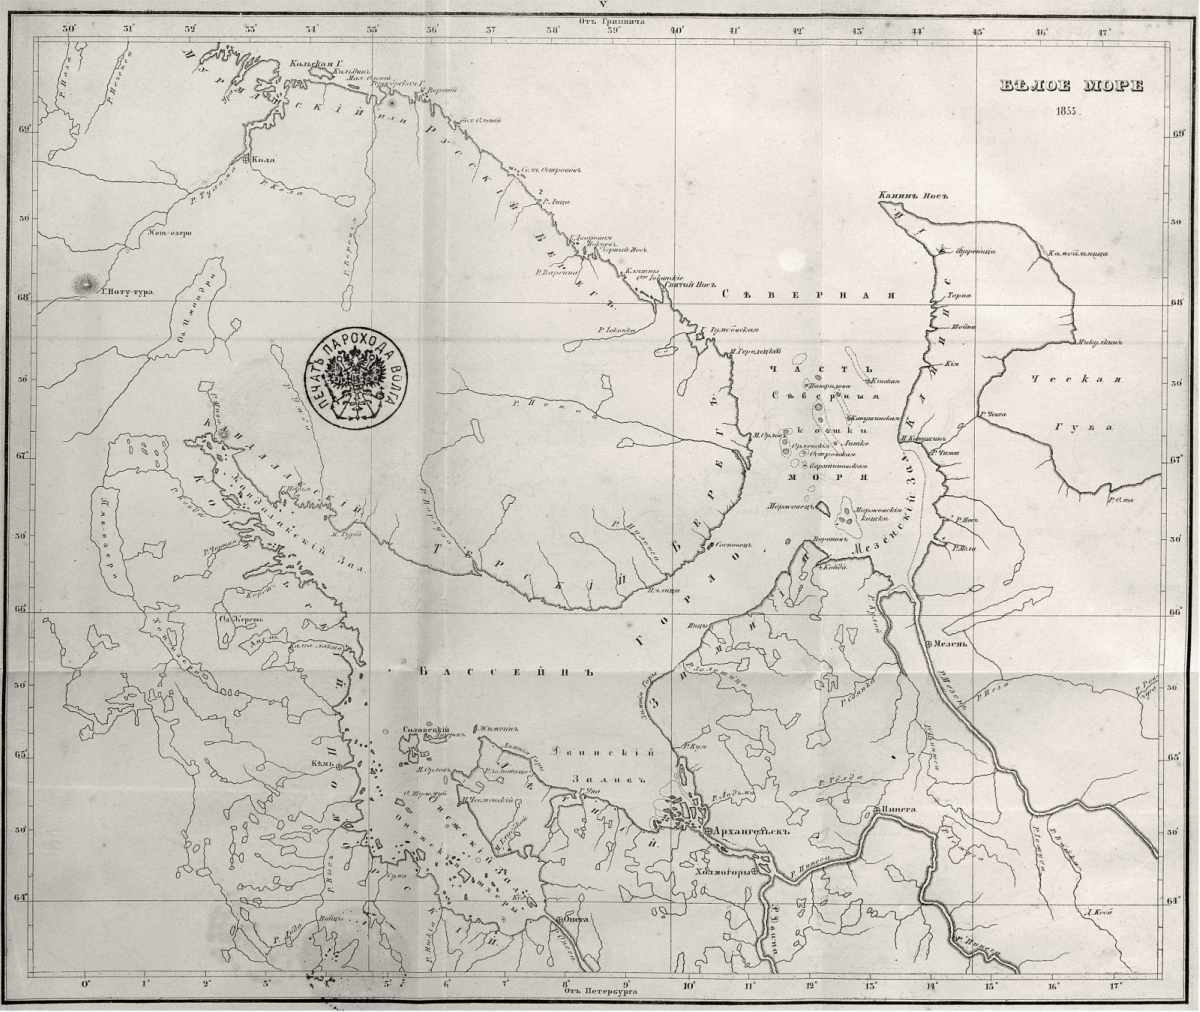 The map of the White Sea